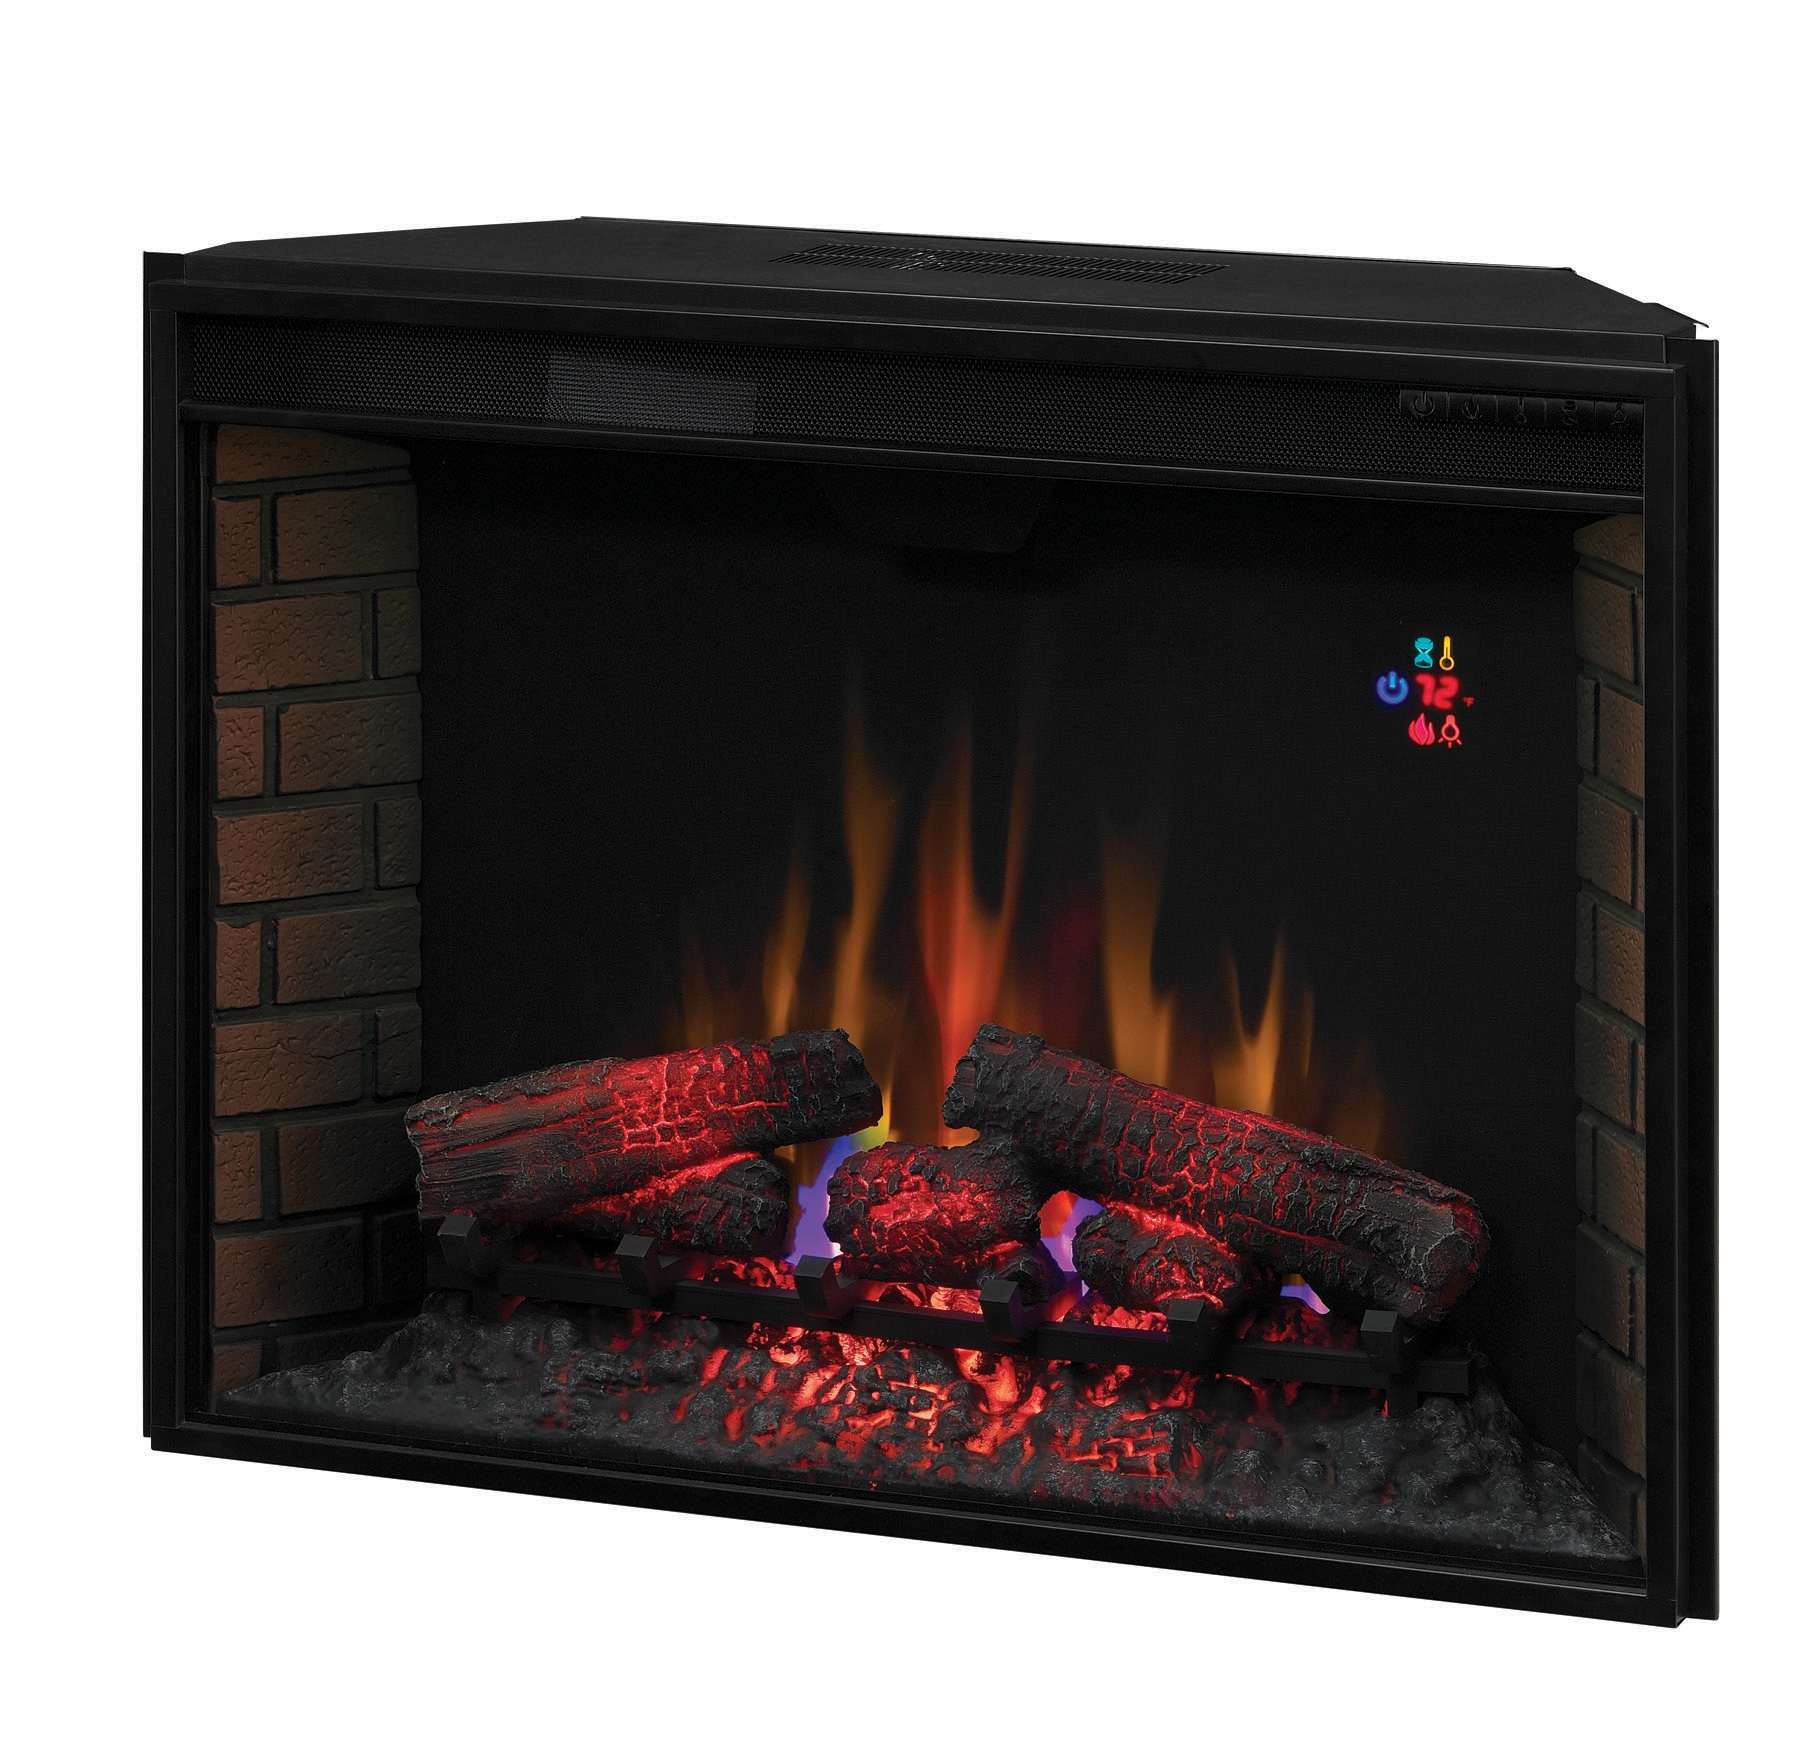 34 1 Classicflame Spectrafire Curved Electric Fireplace Insert Portablefireplace